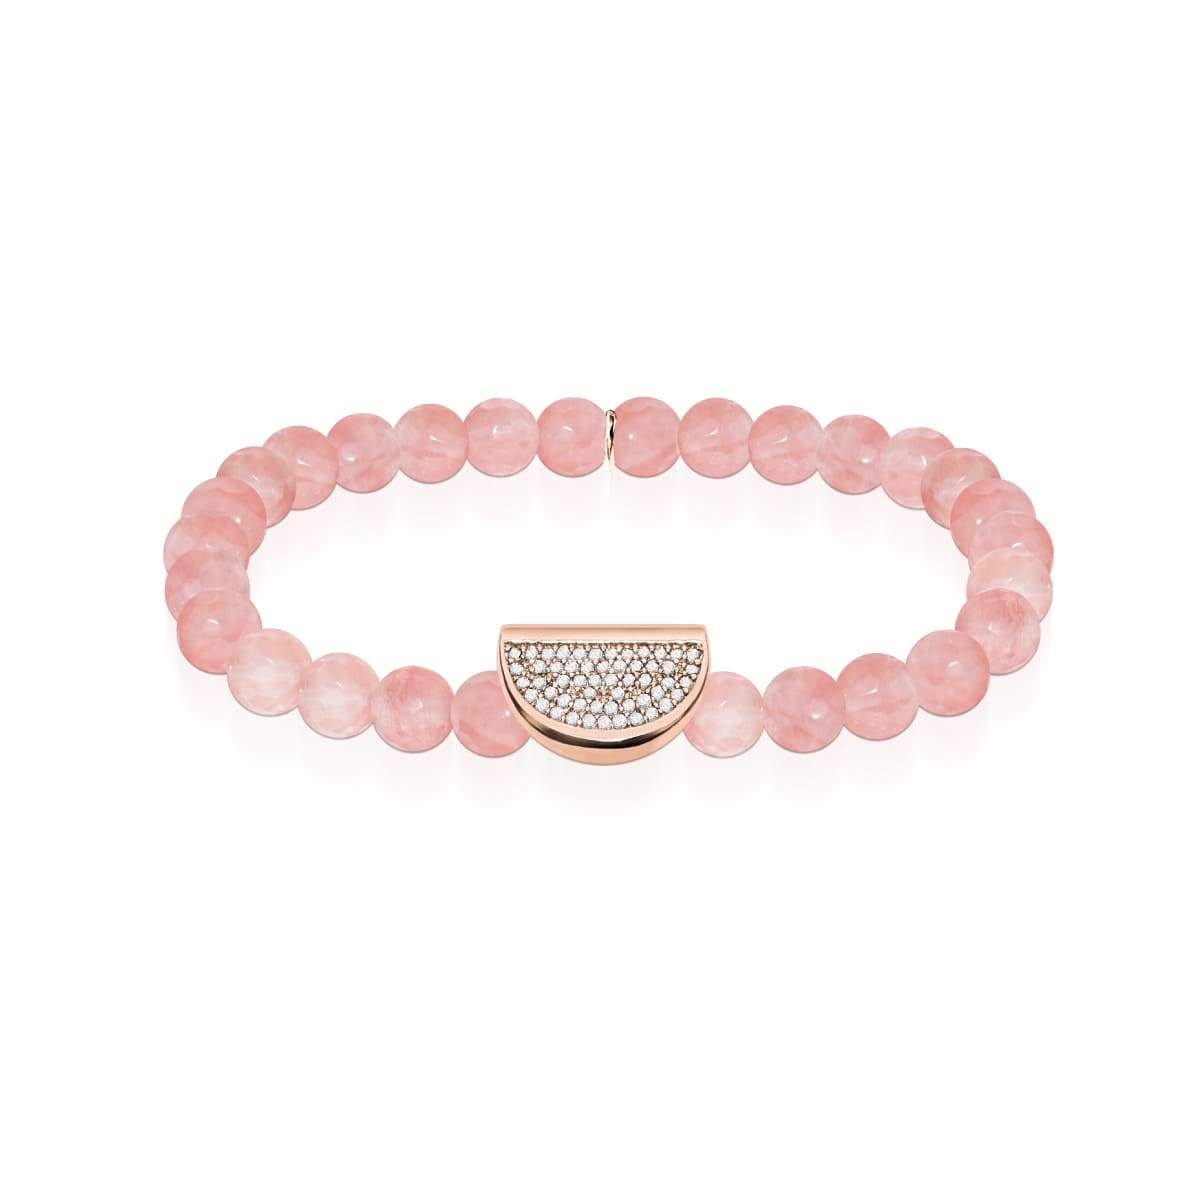 Juicy | Or rose 18 carats et apyrite rose | Crystal Melon